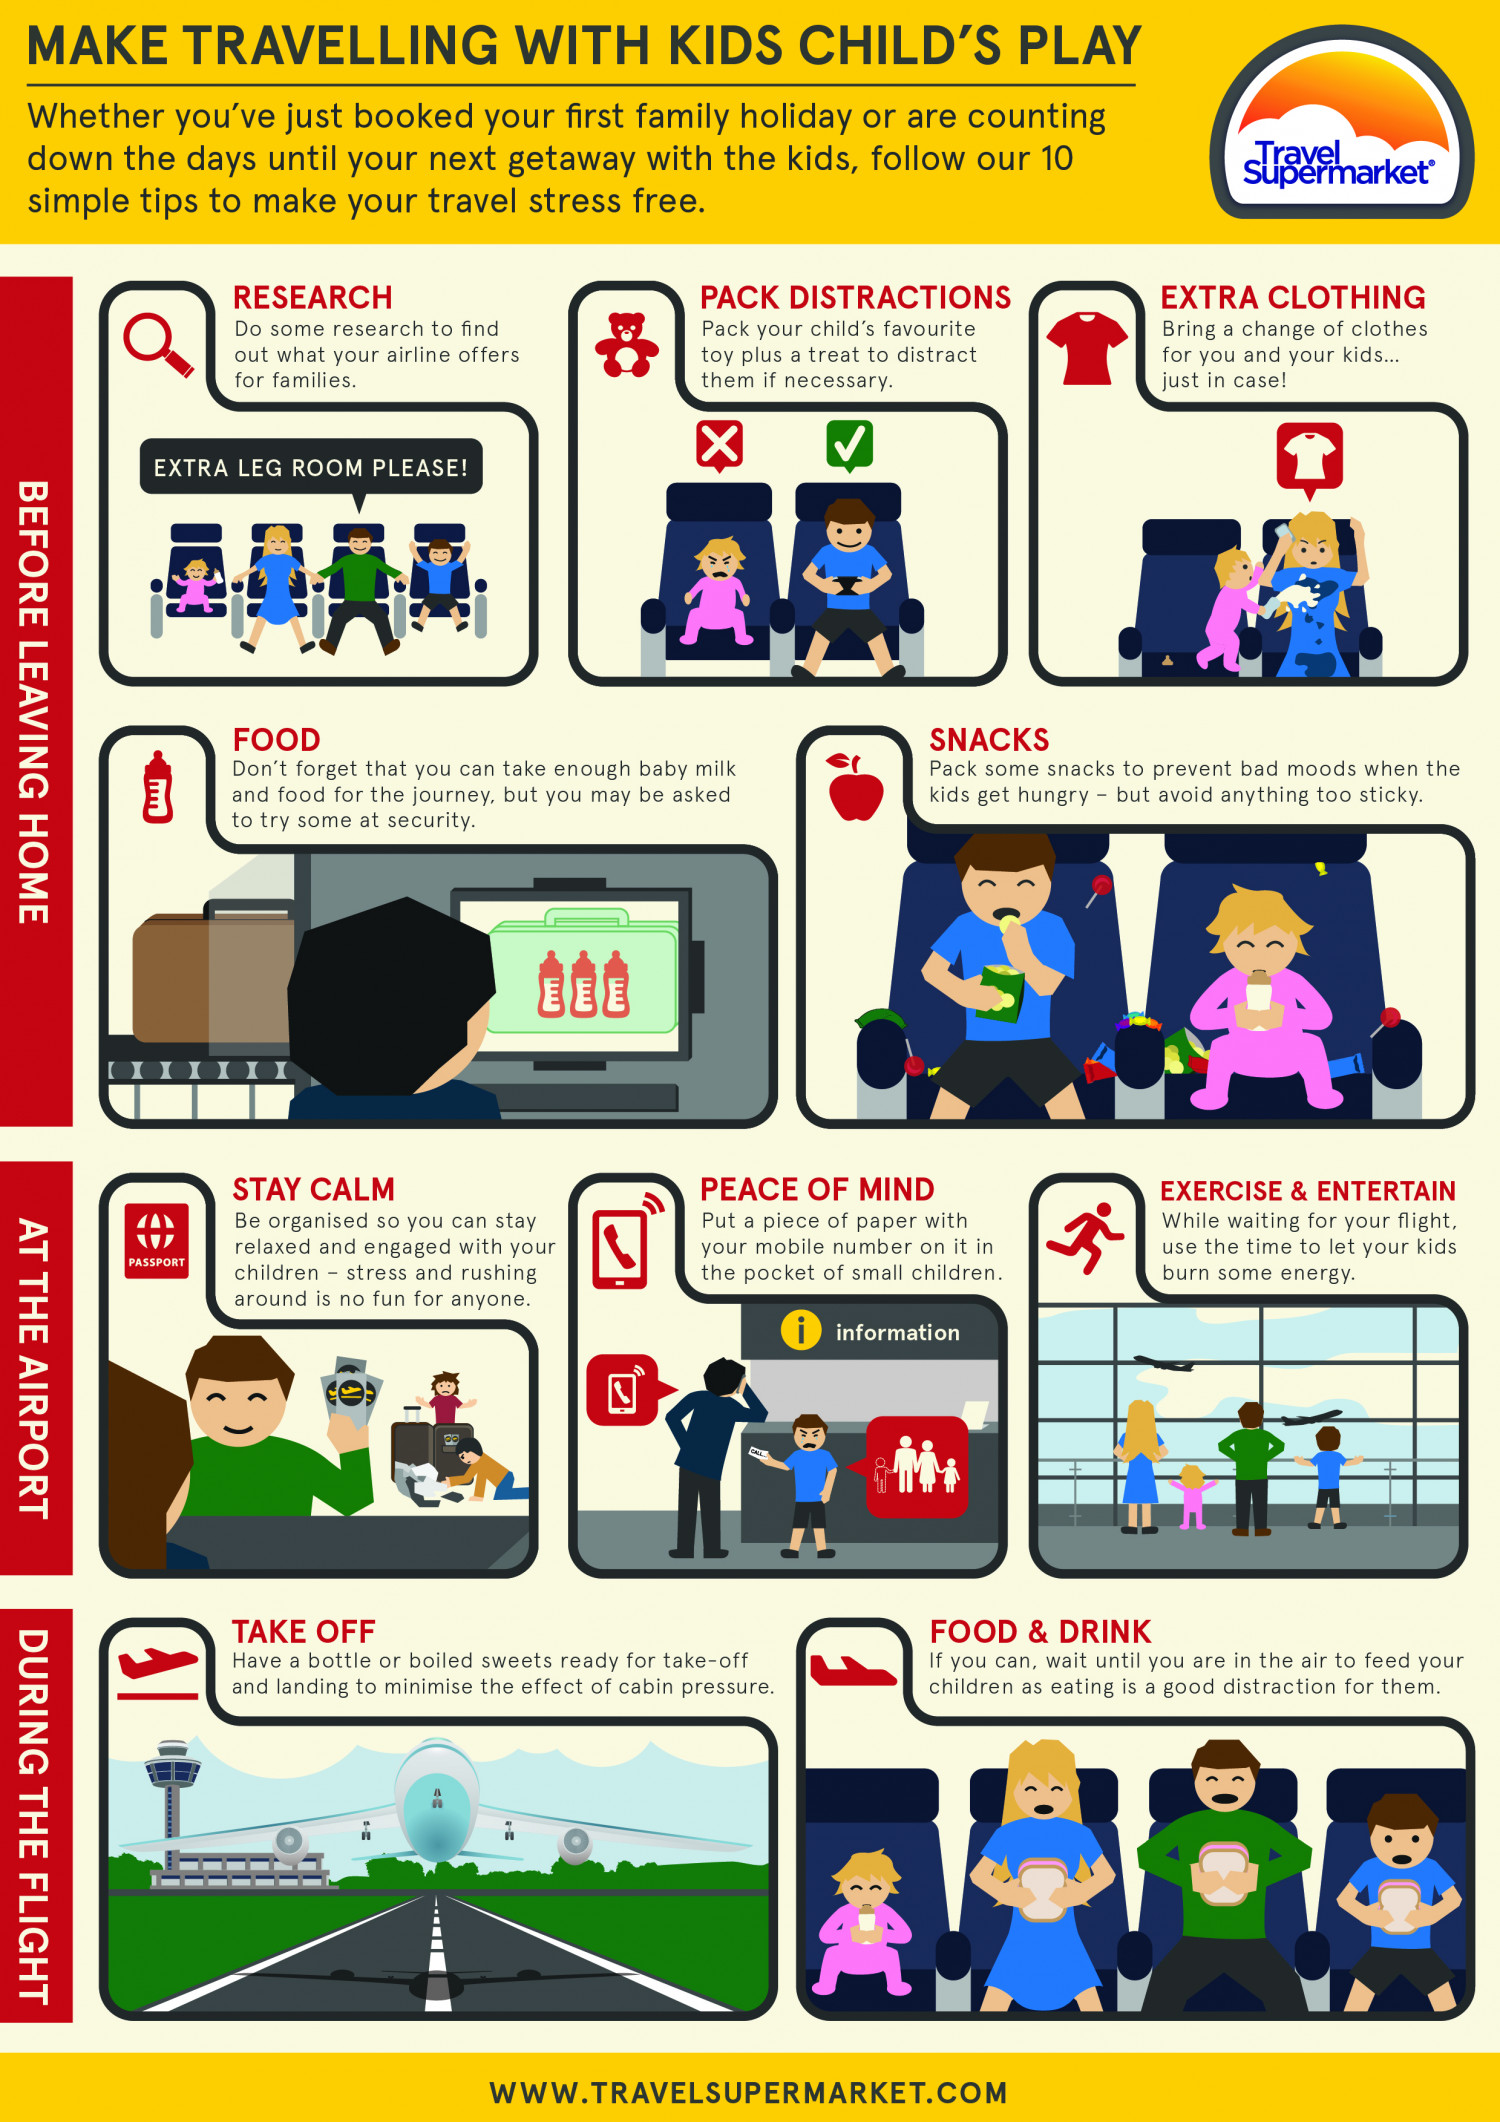 Make Travelling With Kids Child's Play Infographic